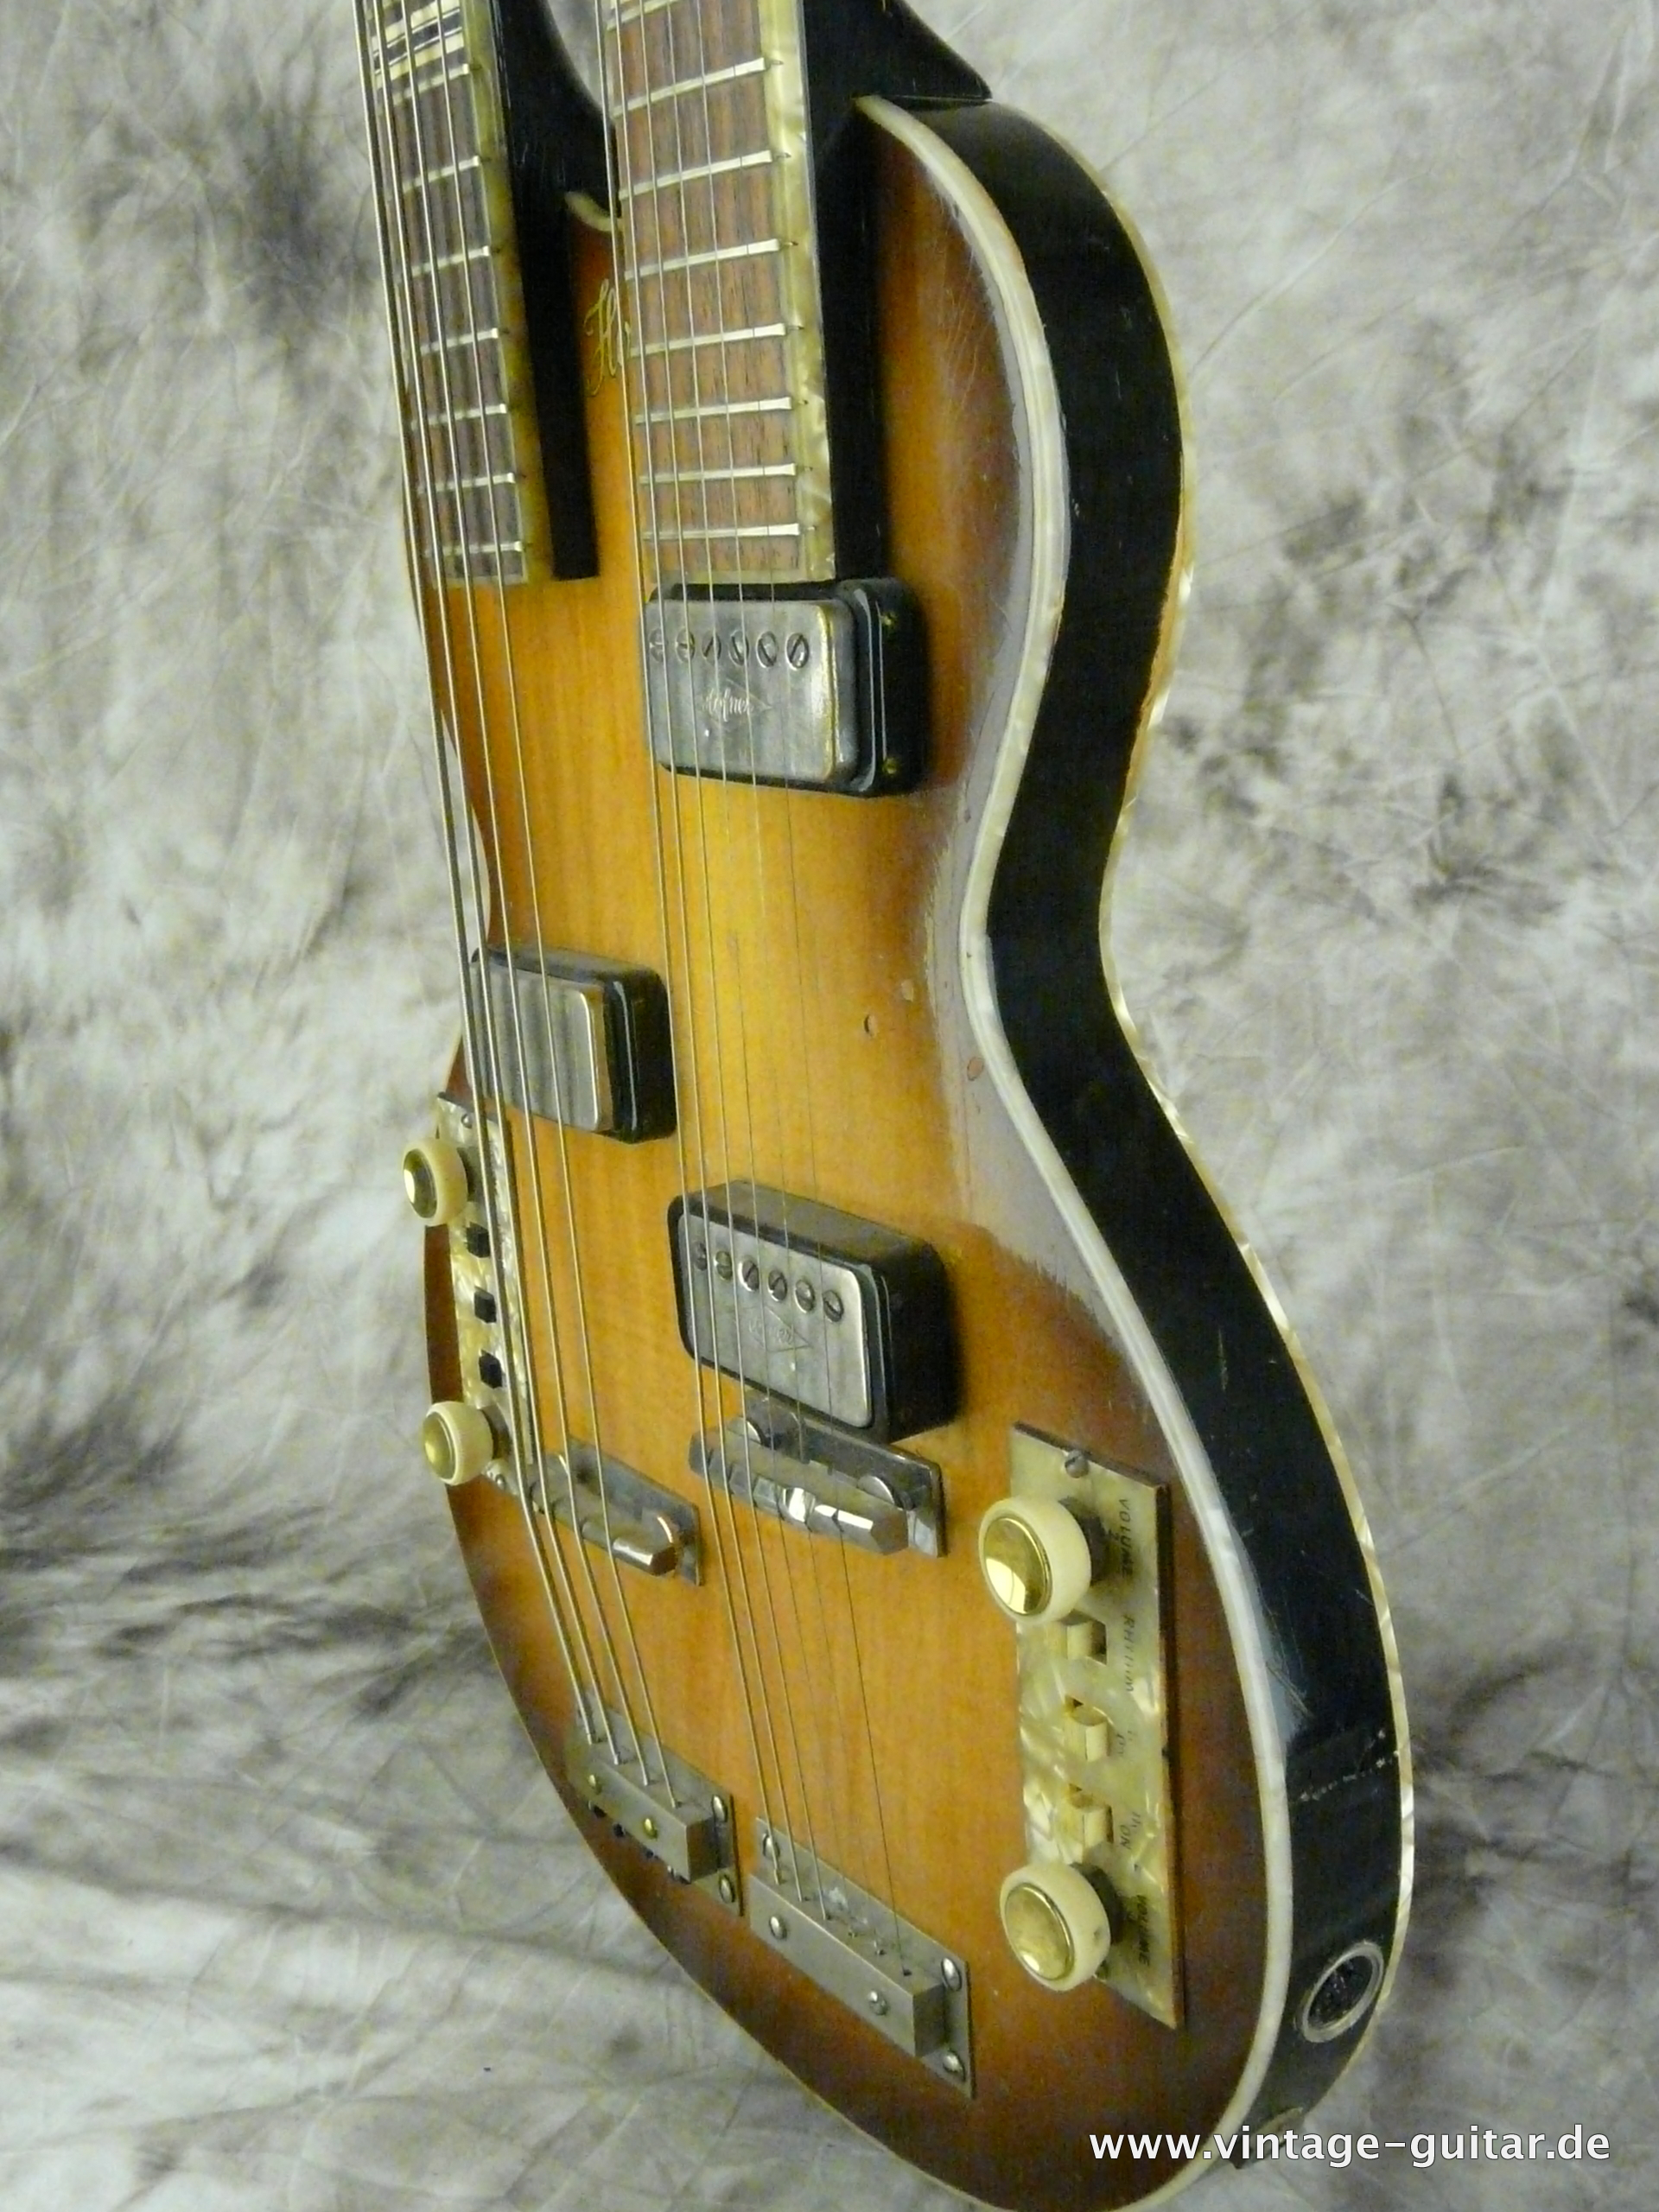 img/vintage/2648/Hofner-Double-Neck-Guitar-and-Bass-Model-191-012.JPG